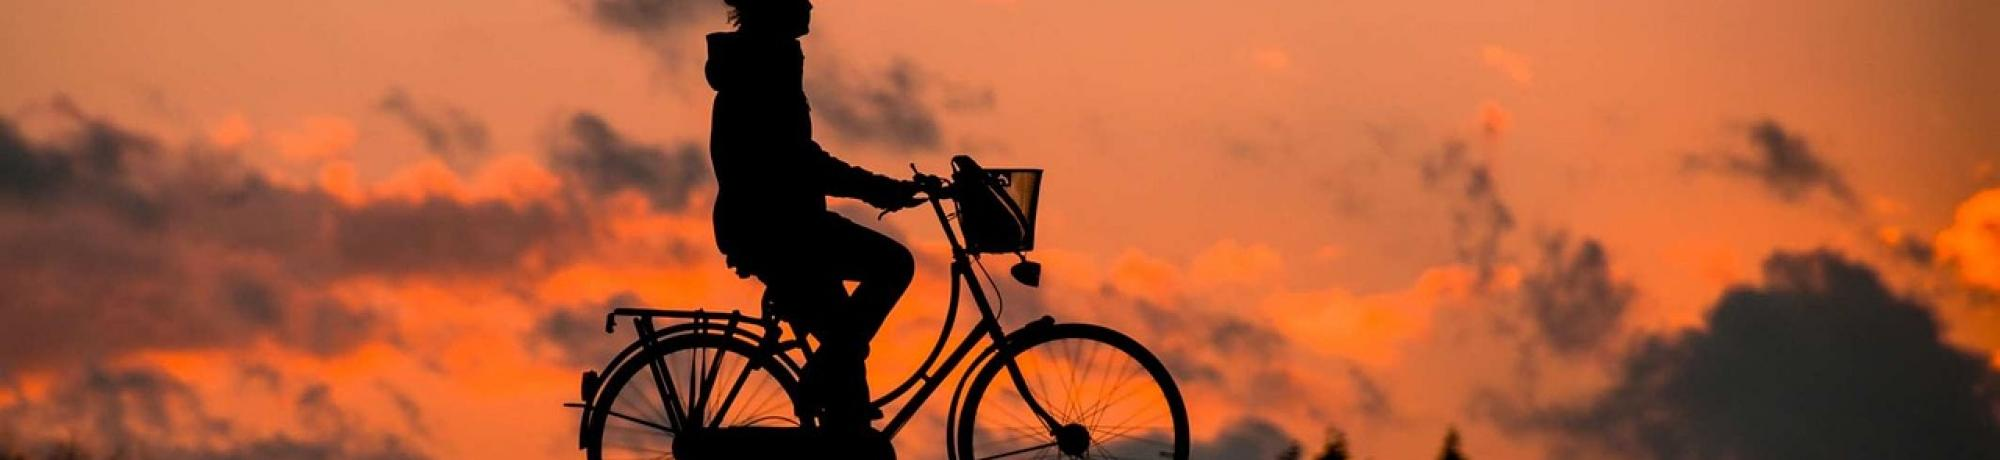 Silhouette of person riding bicycle at sunset